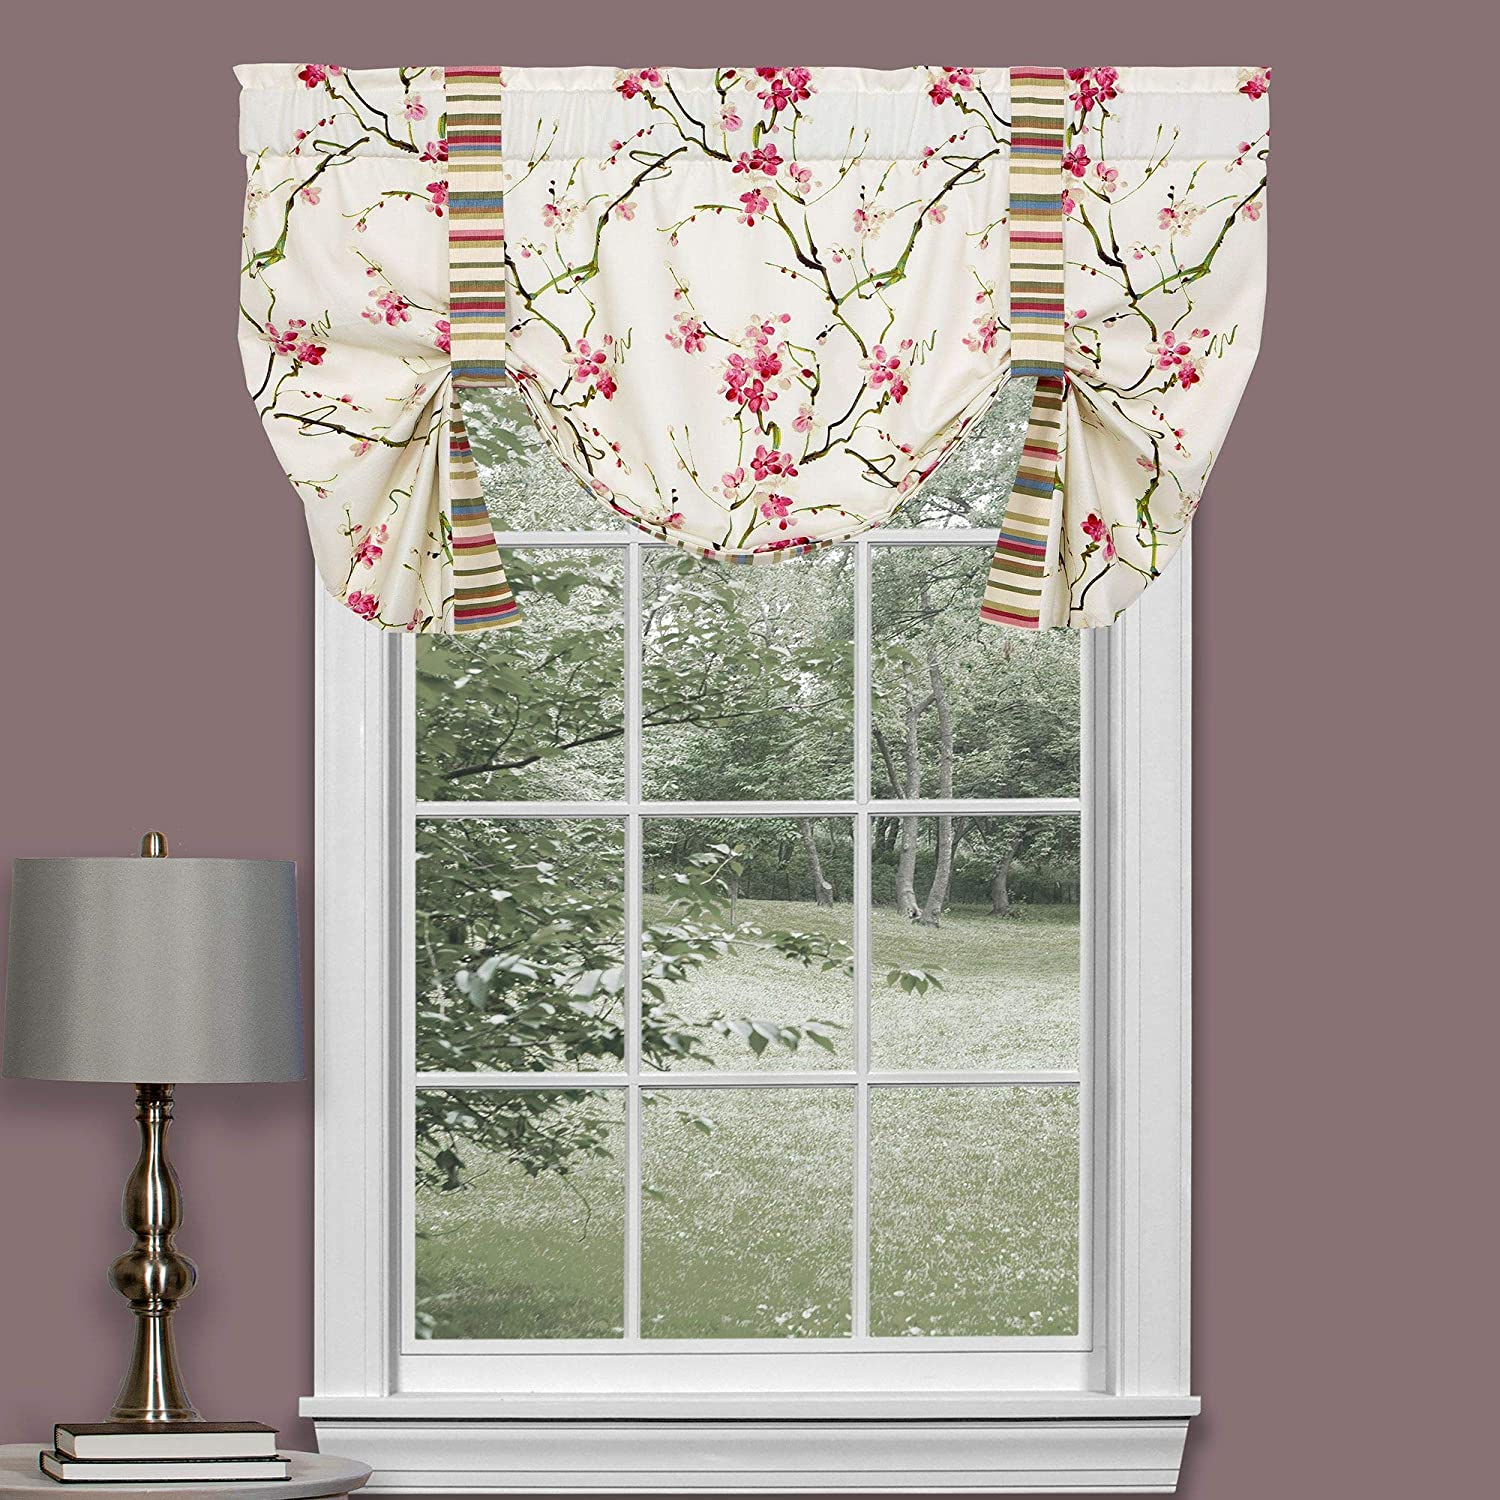 Thomasville Al Challenge the lowest price of Japan sold out. At Home Cherry Blossom Valance Treatments Up 52 Tie